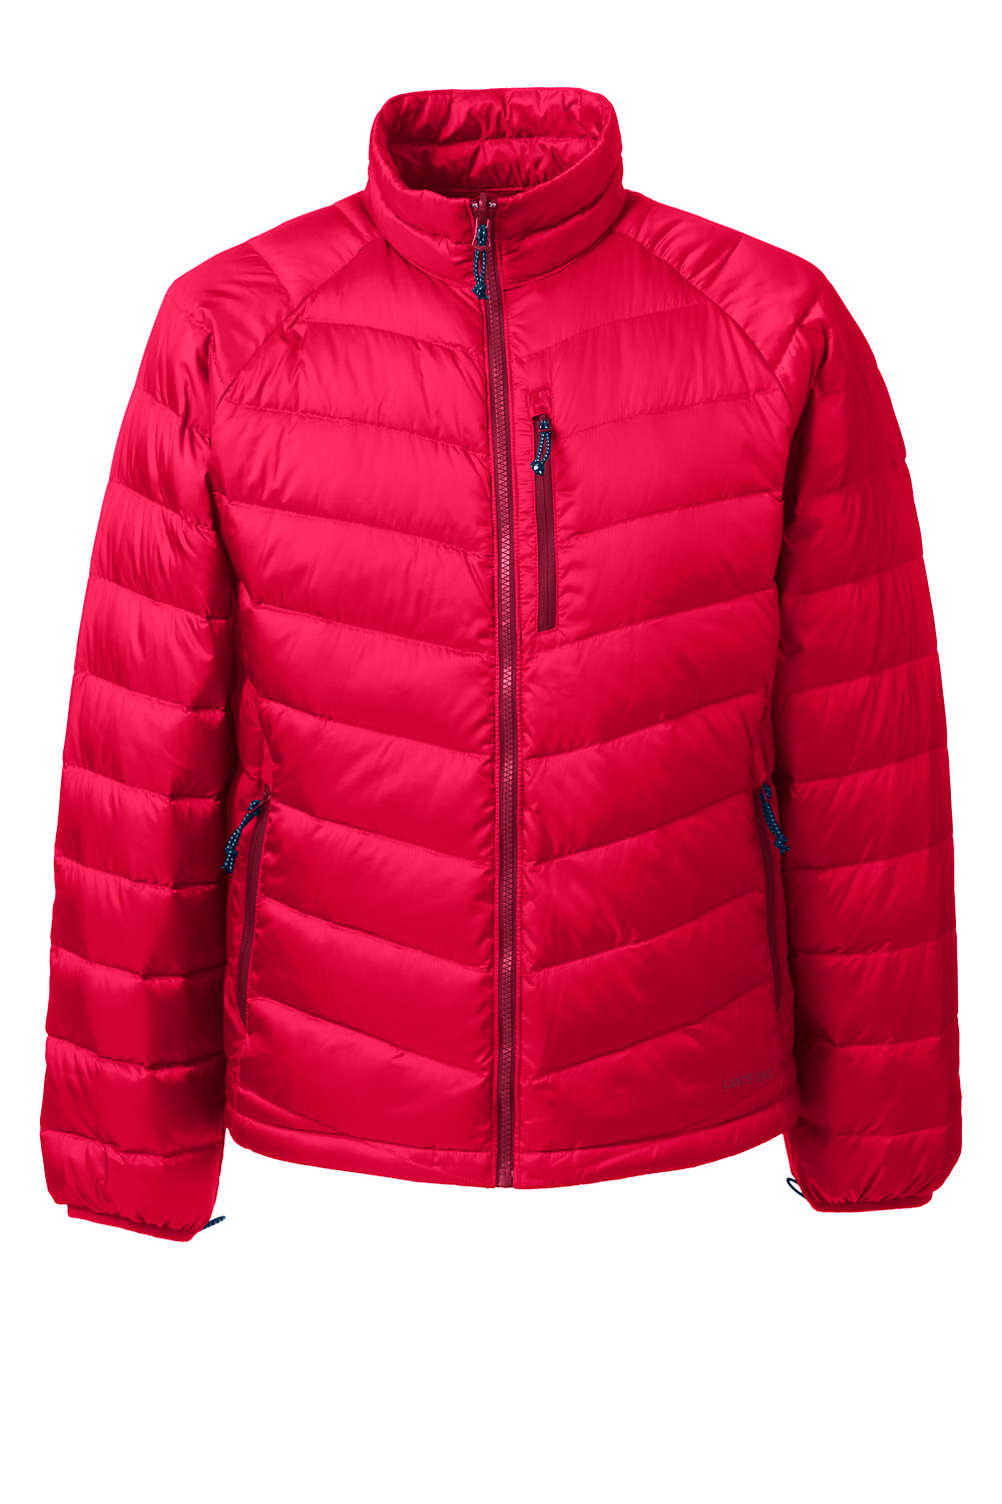 504989767b4 Men's 800 Down Packable Jacket from Lands' End